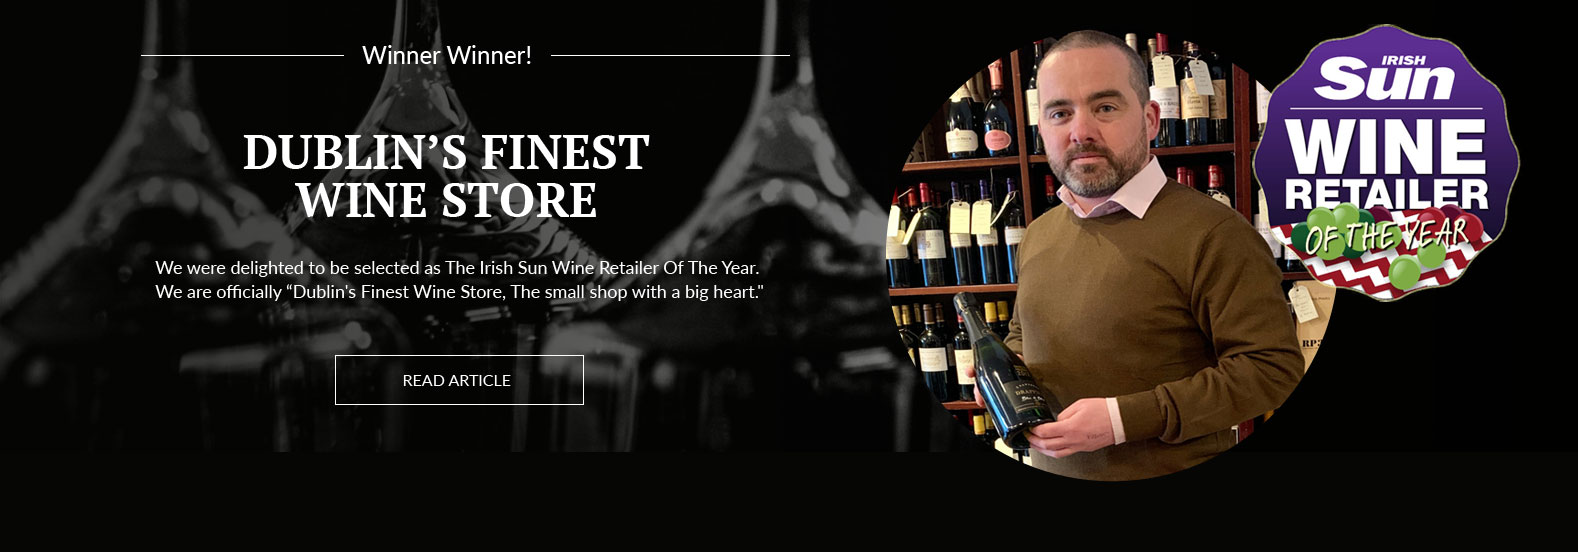 A picture of Paul holding a bottle of wine in the shop, overlaid with a plaque announcing their win as The Irish Sun Wine Retailer Of The Year.